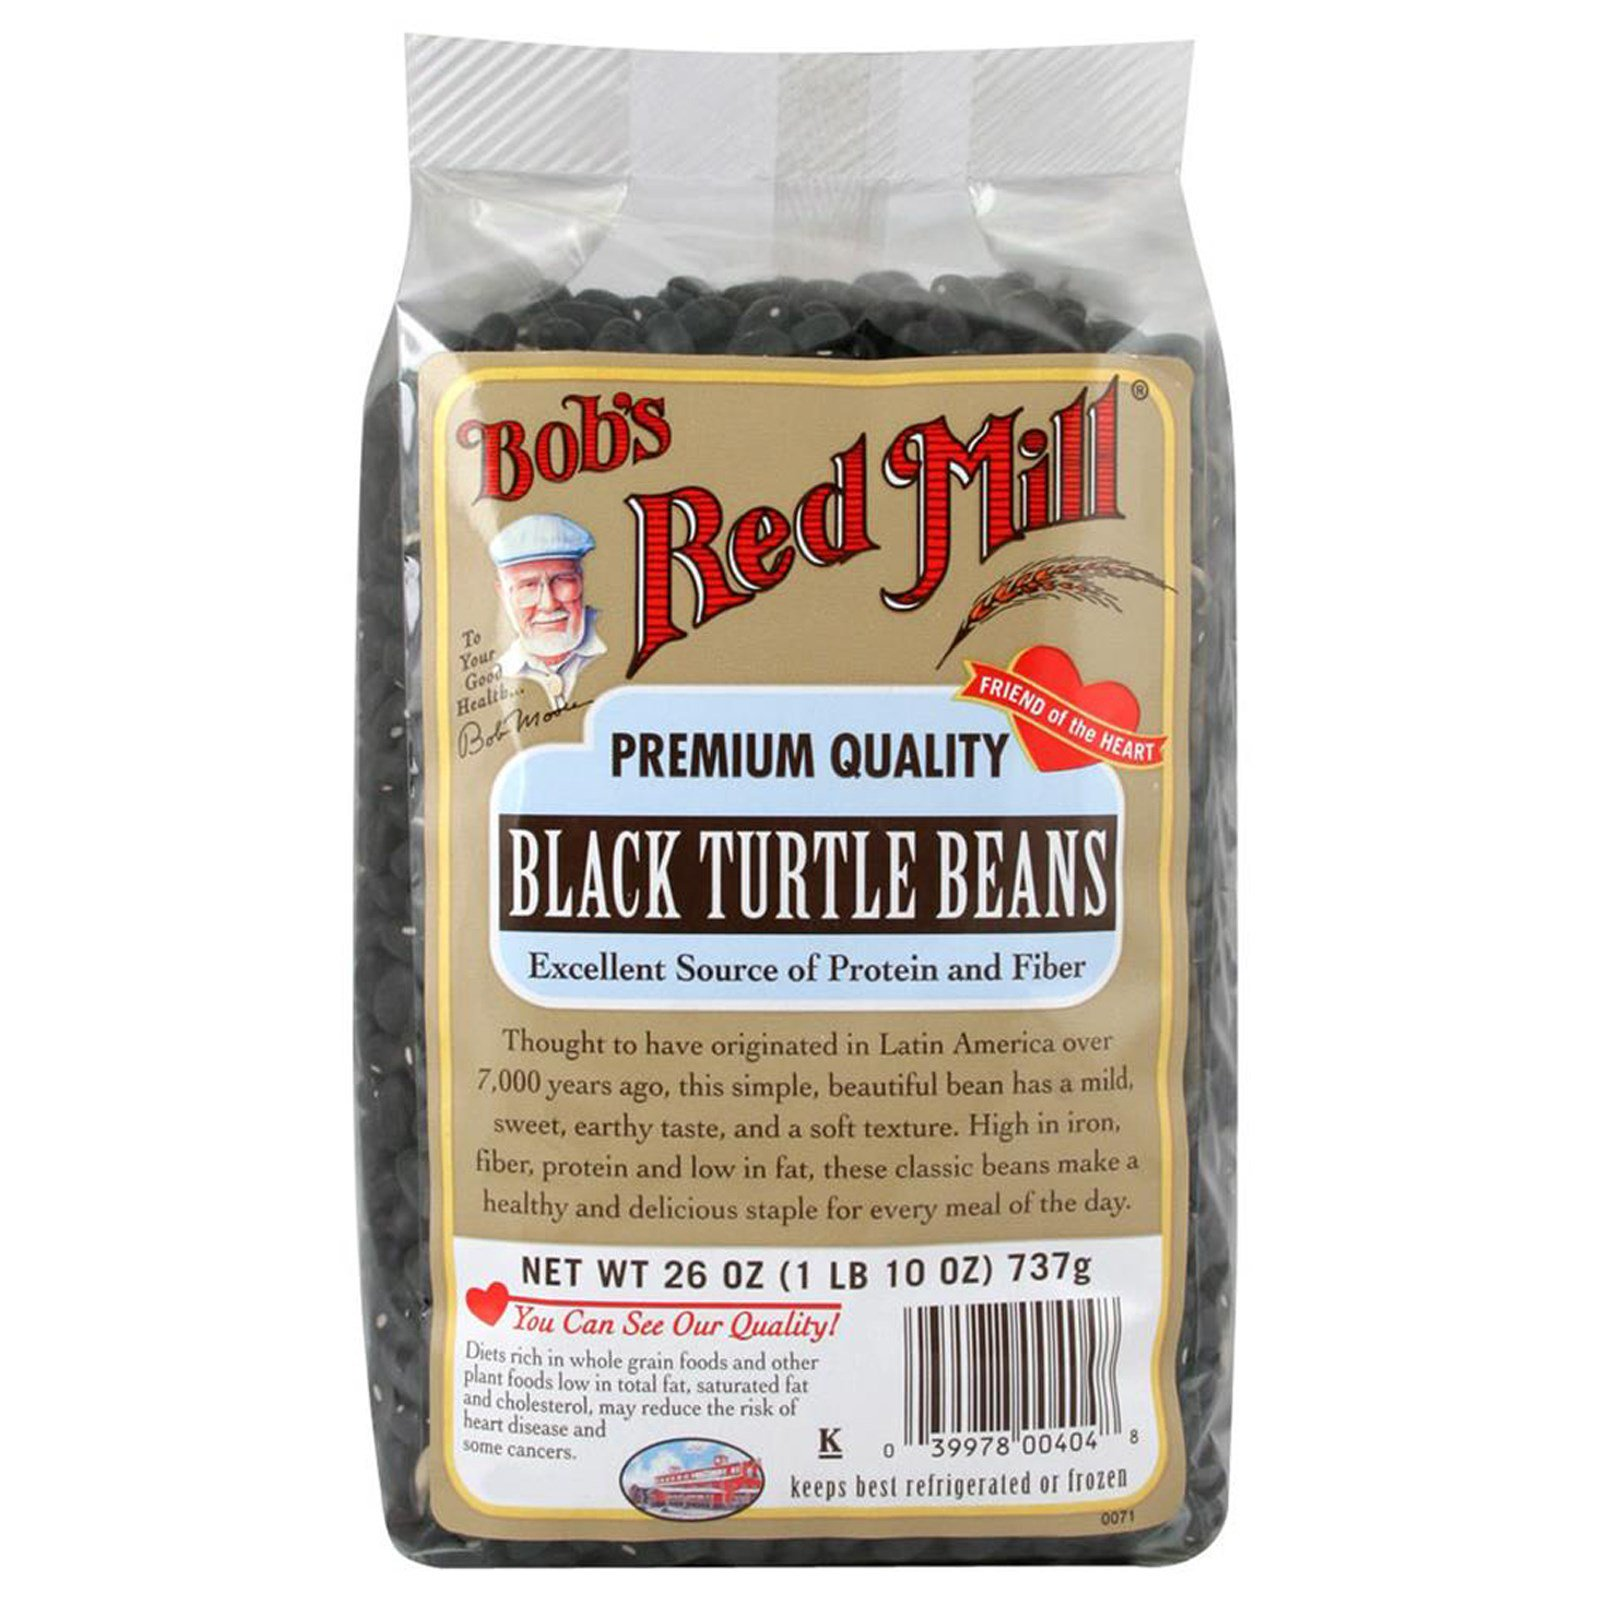 Bob's Red Mill, Black Turtle Beans, 26 oz (pack of 3)